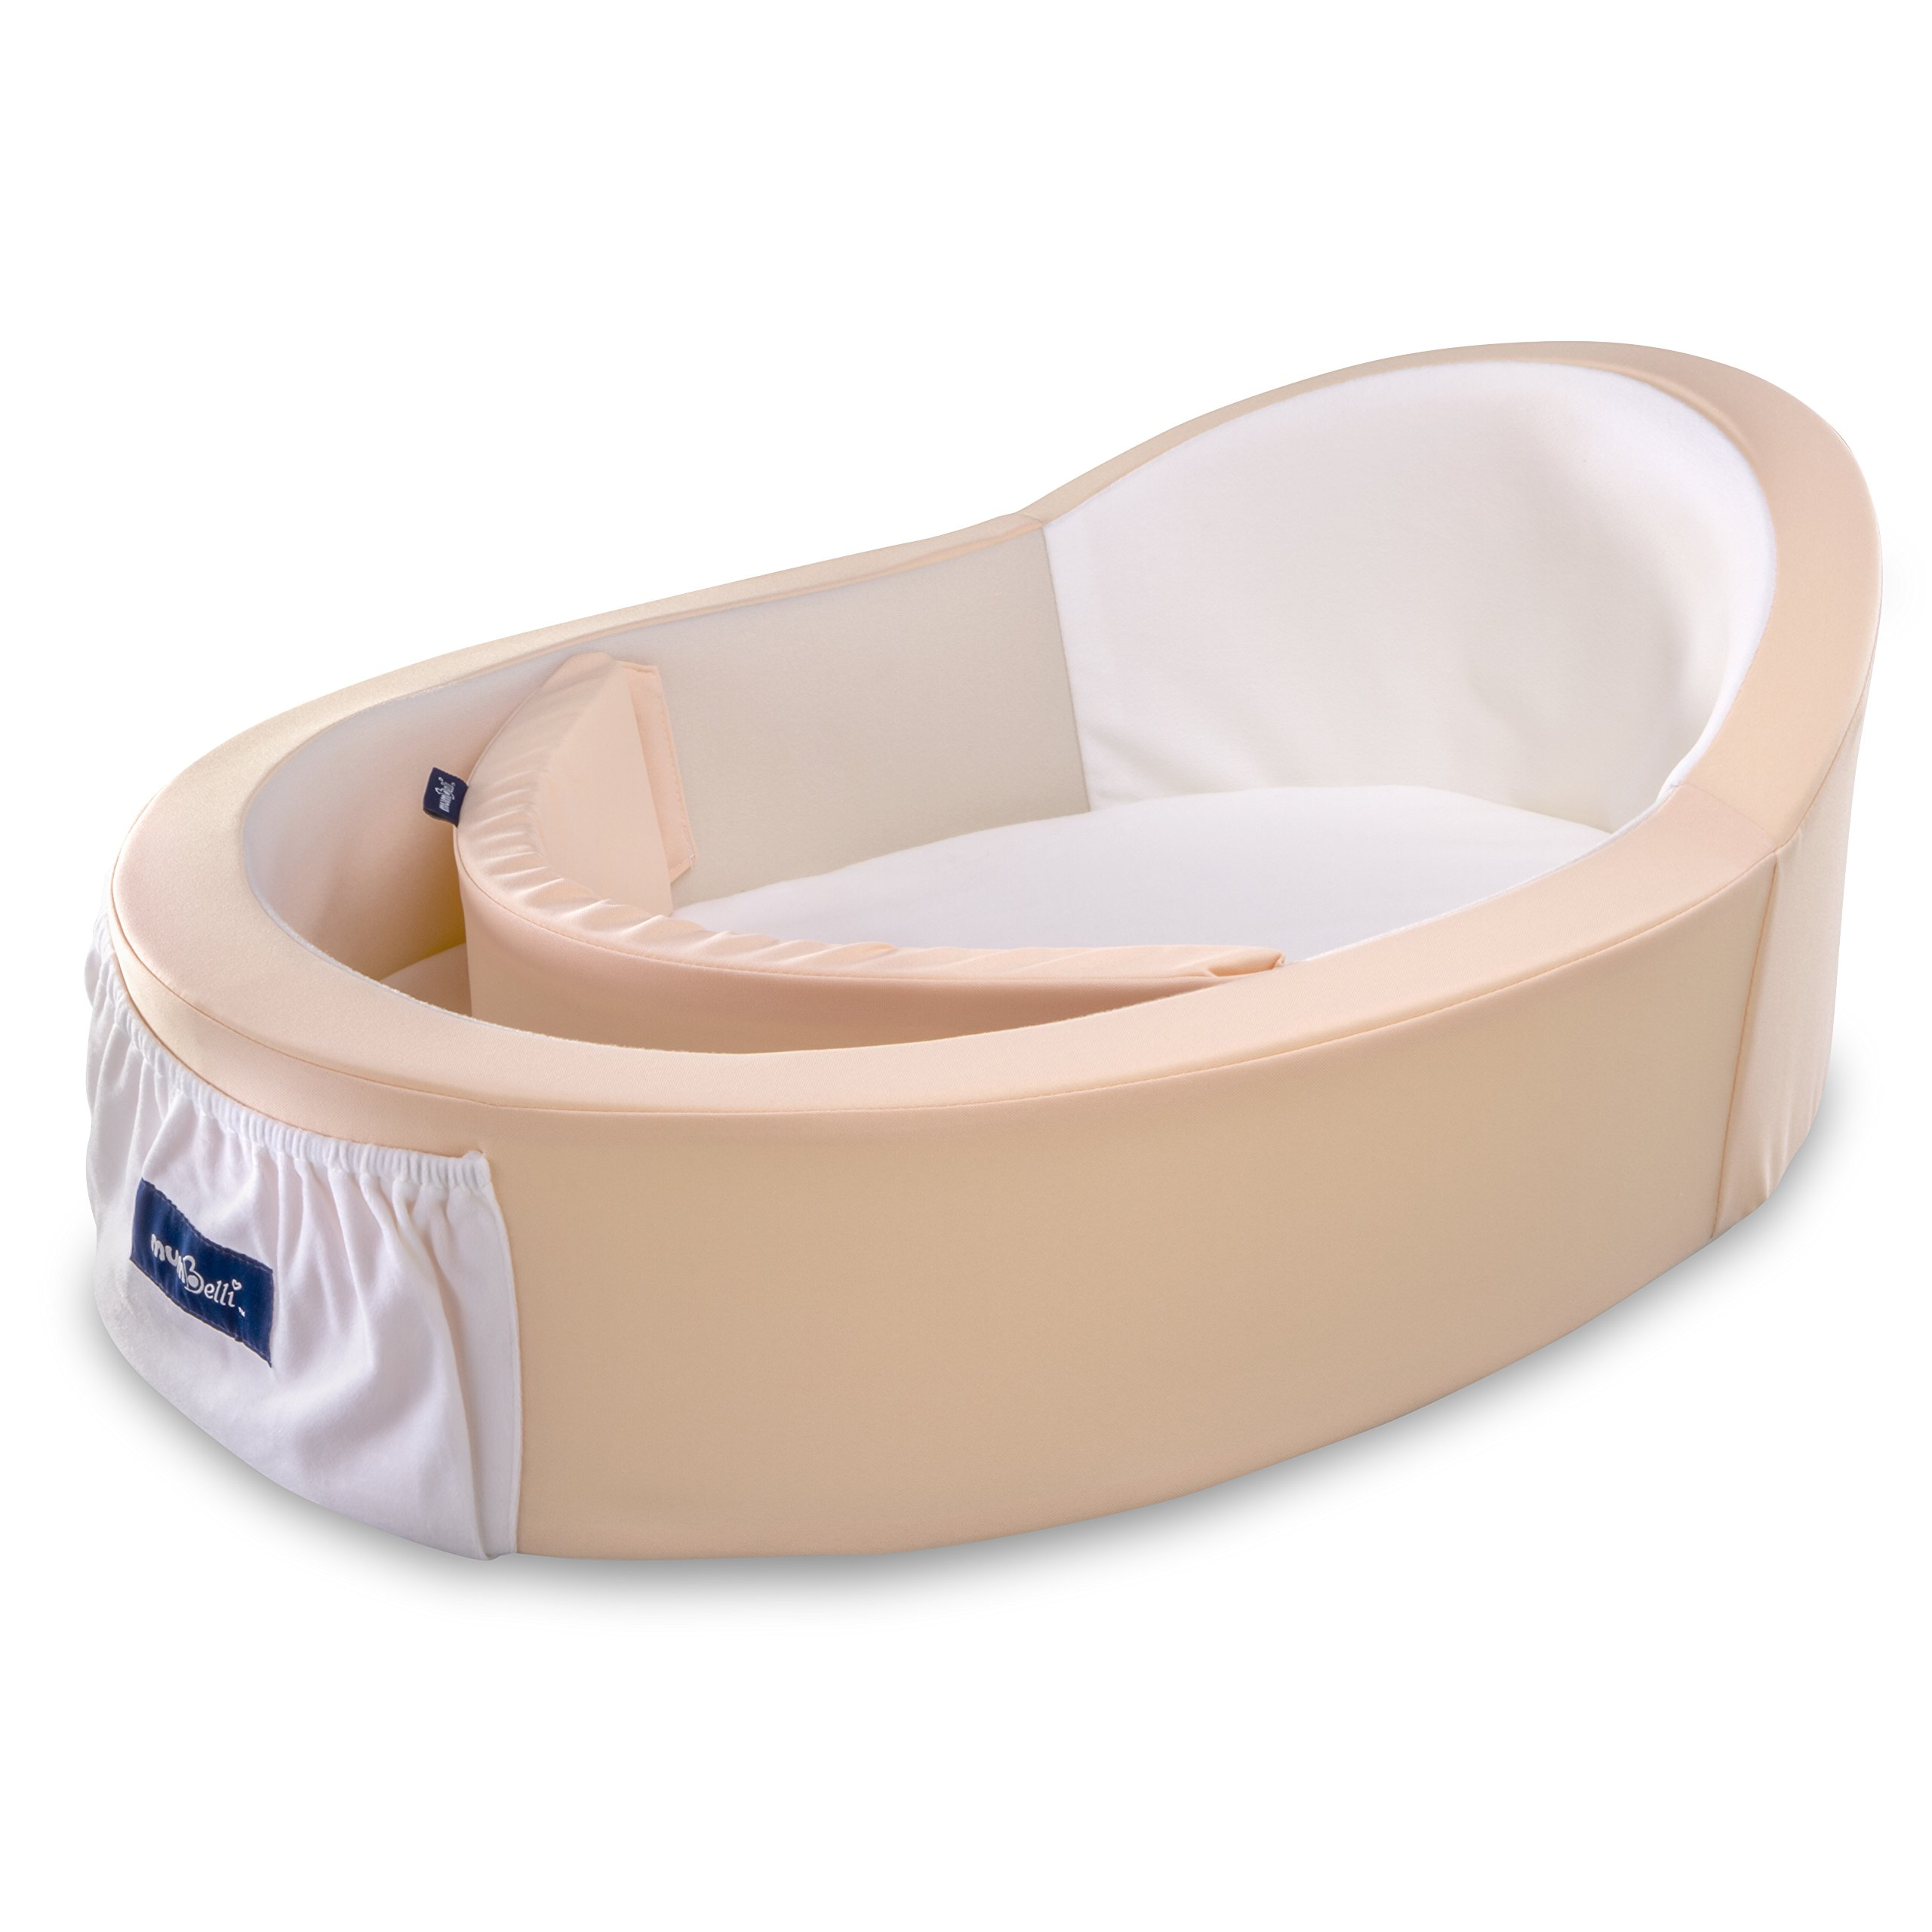 Mumbelli - The only Womb-Like and Adjustable Infant Bed; Patented Design (Peach). Light Weight for Easy Travel, Perfect for Lounging, Resting or co Sleeping. Reflux Wedge and Carry Bag Included. by Mumbelli